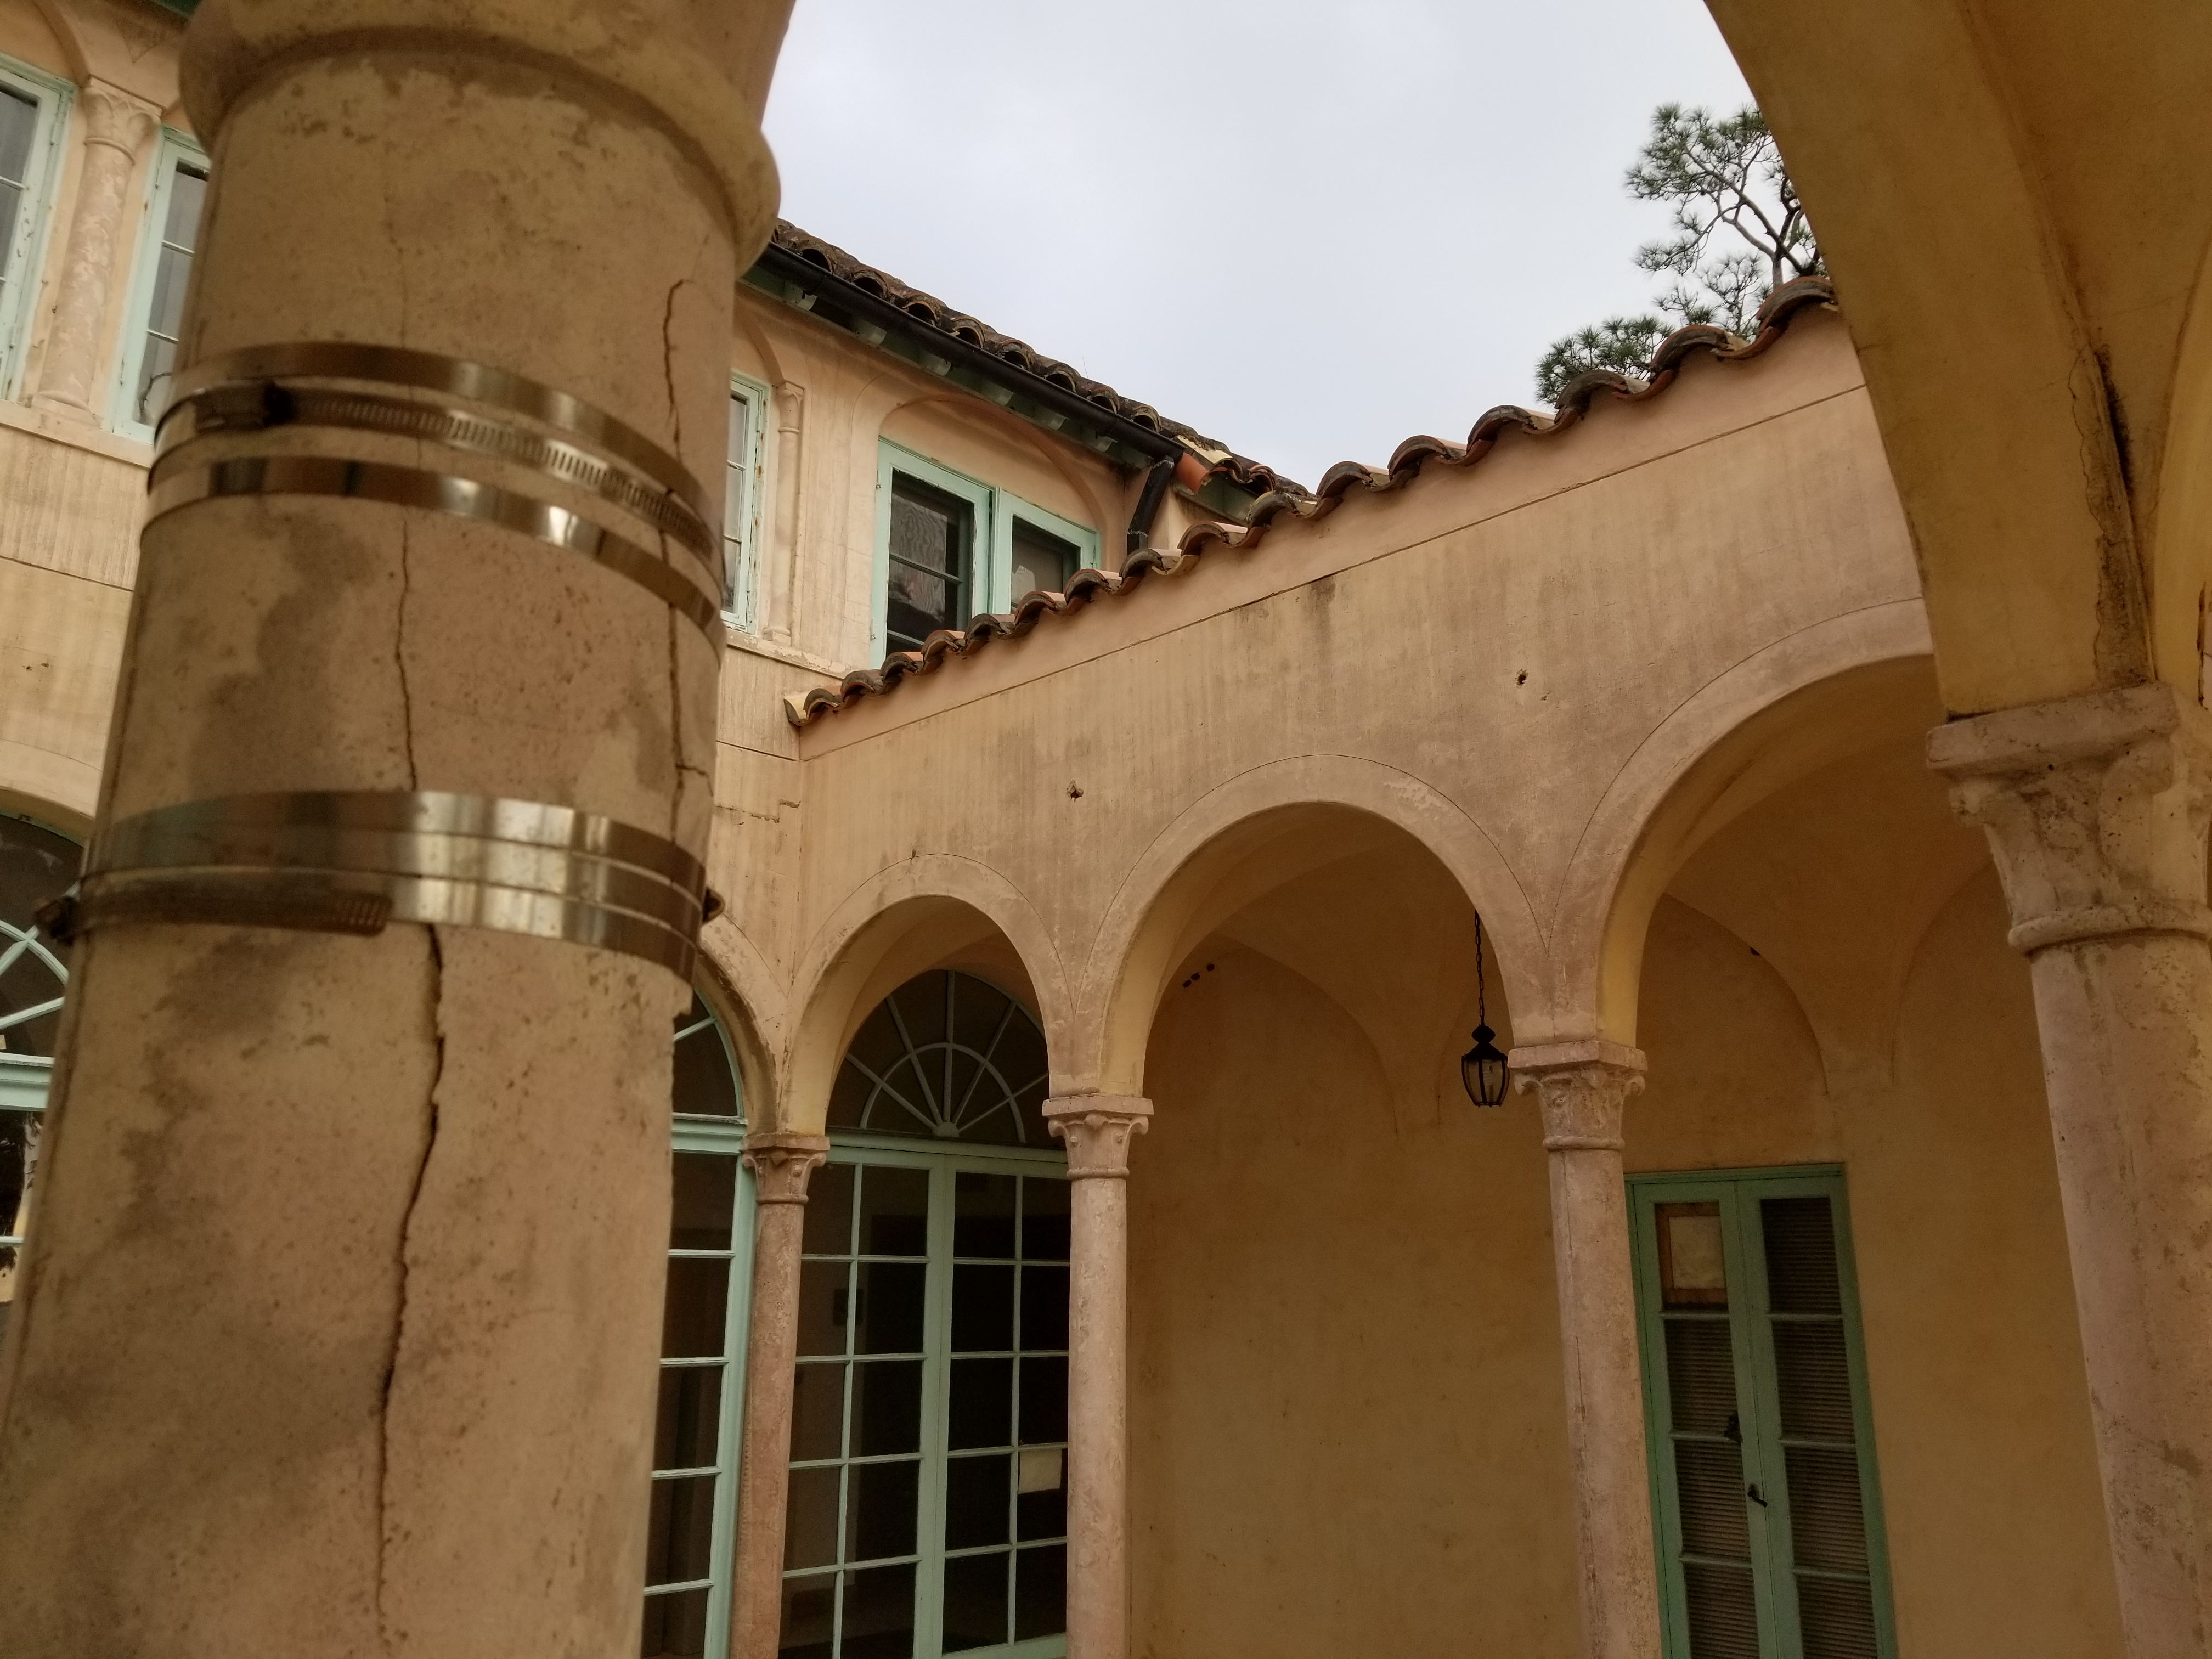 Mold leads to the closure of Caples Mansion